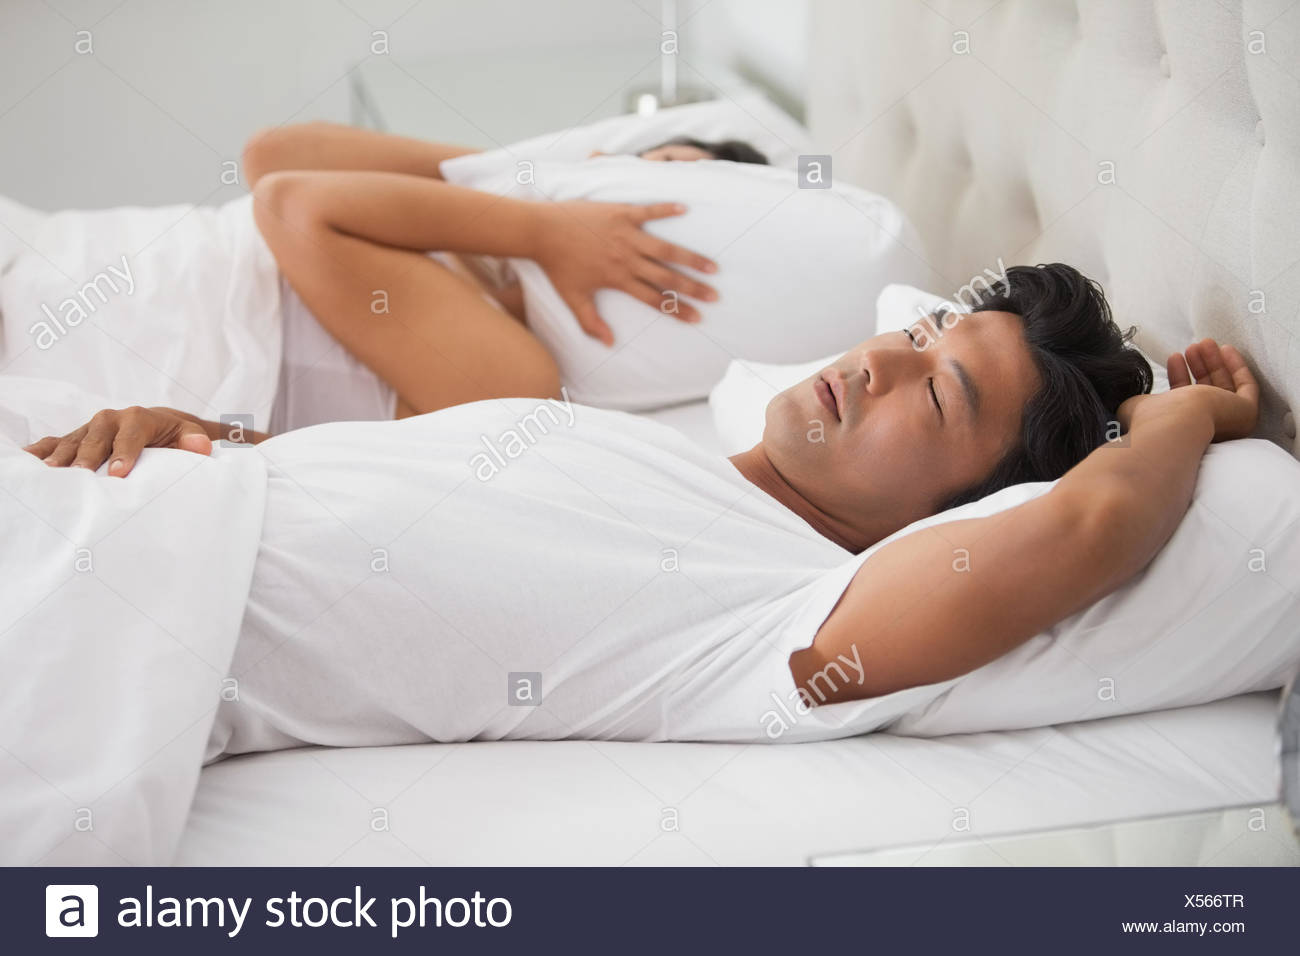 Woman covering her ears as partner is snoring loudly - Stock Image